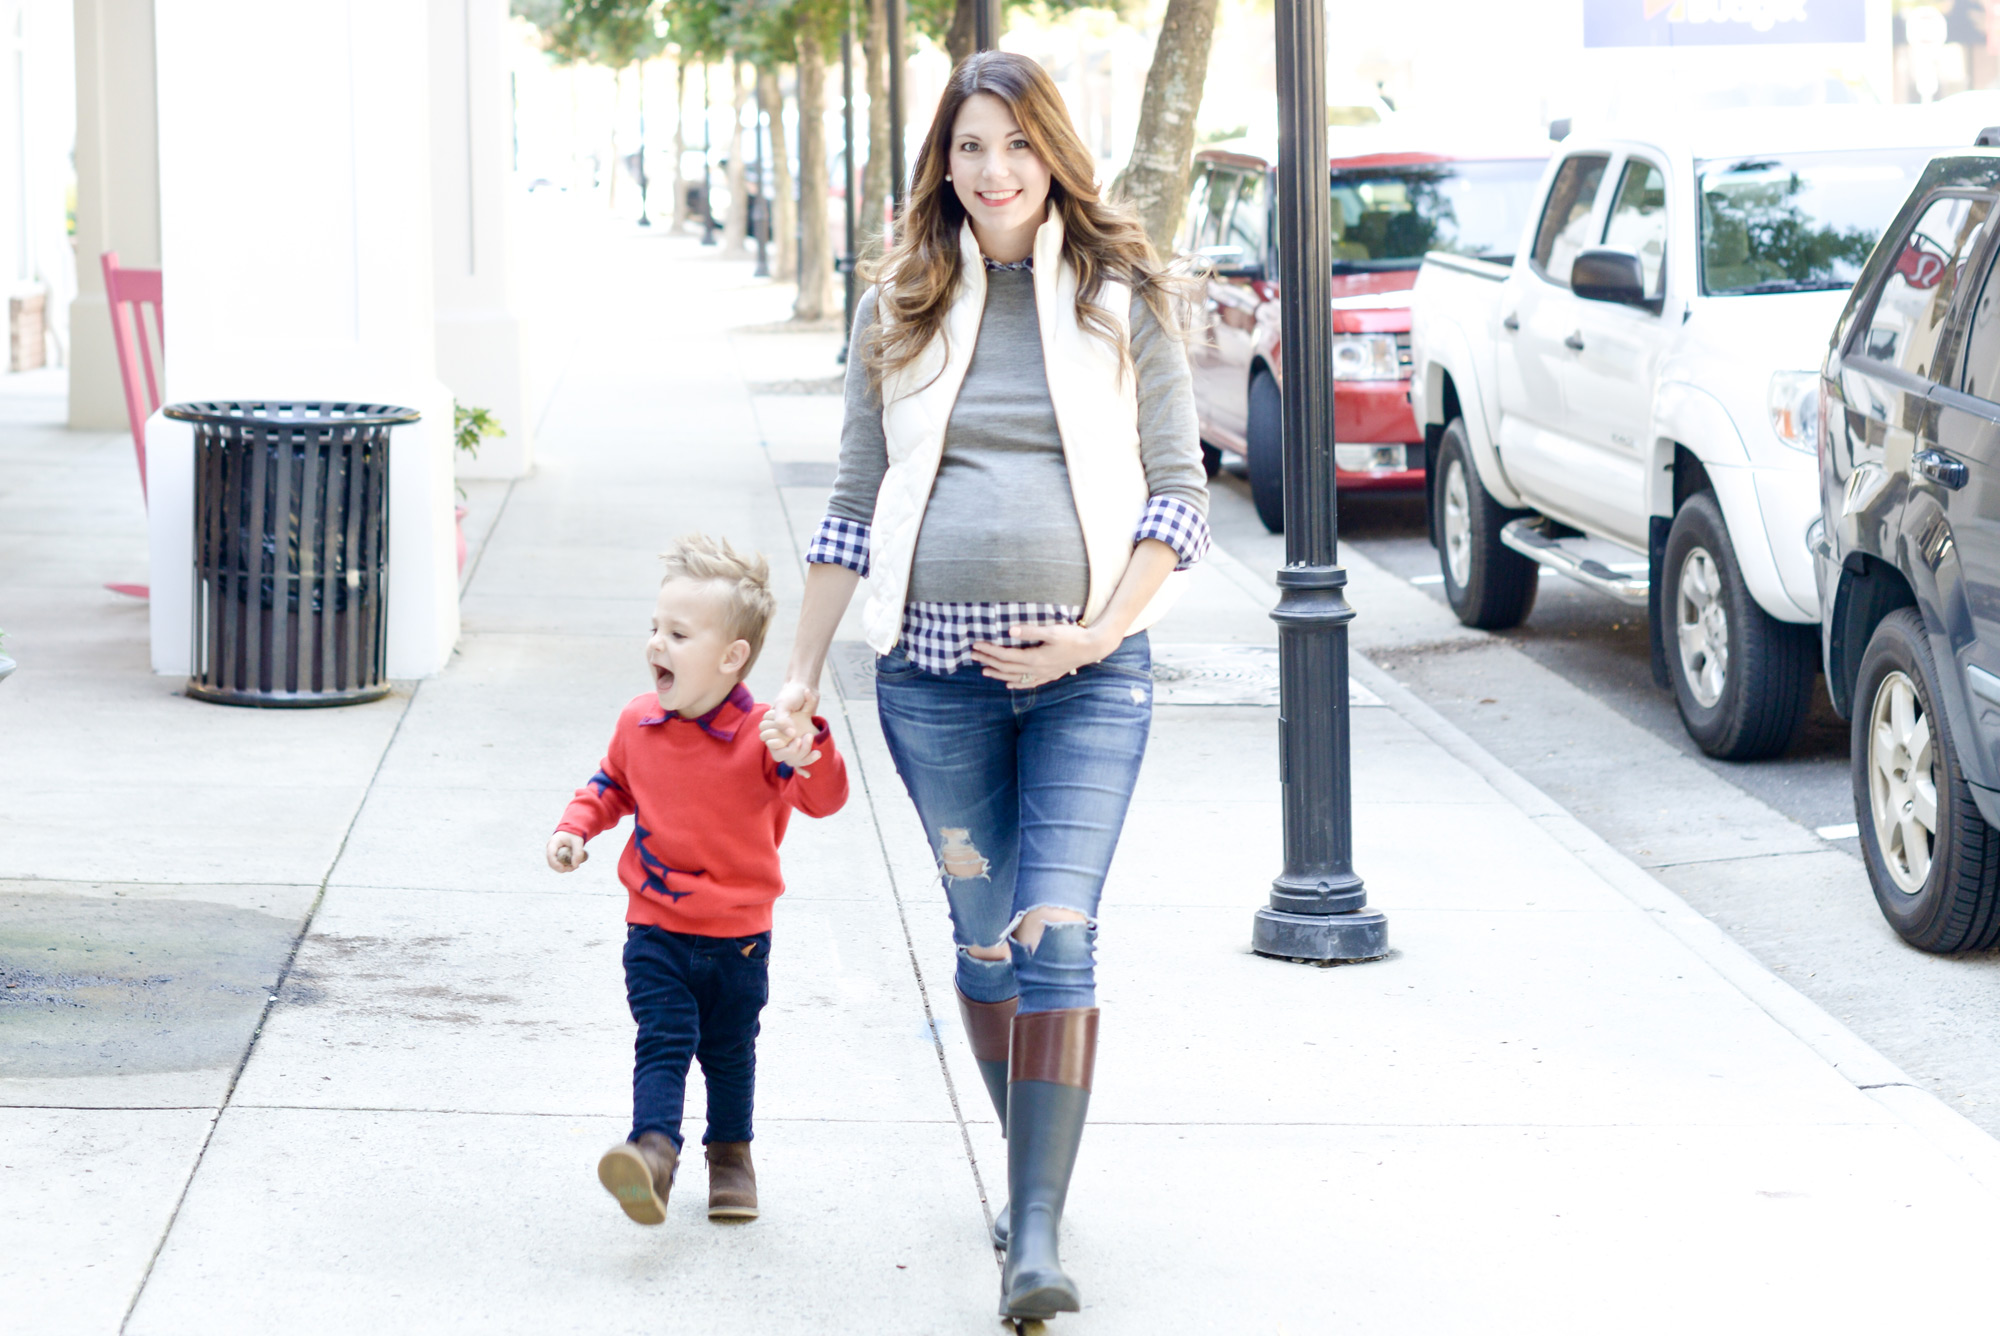 Dressing up the bump! My favorite Fall styles!